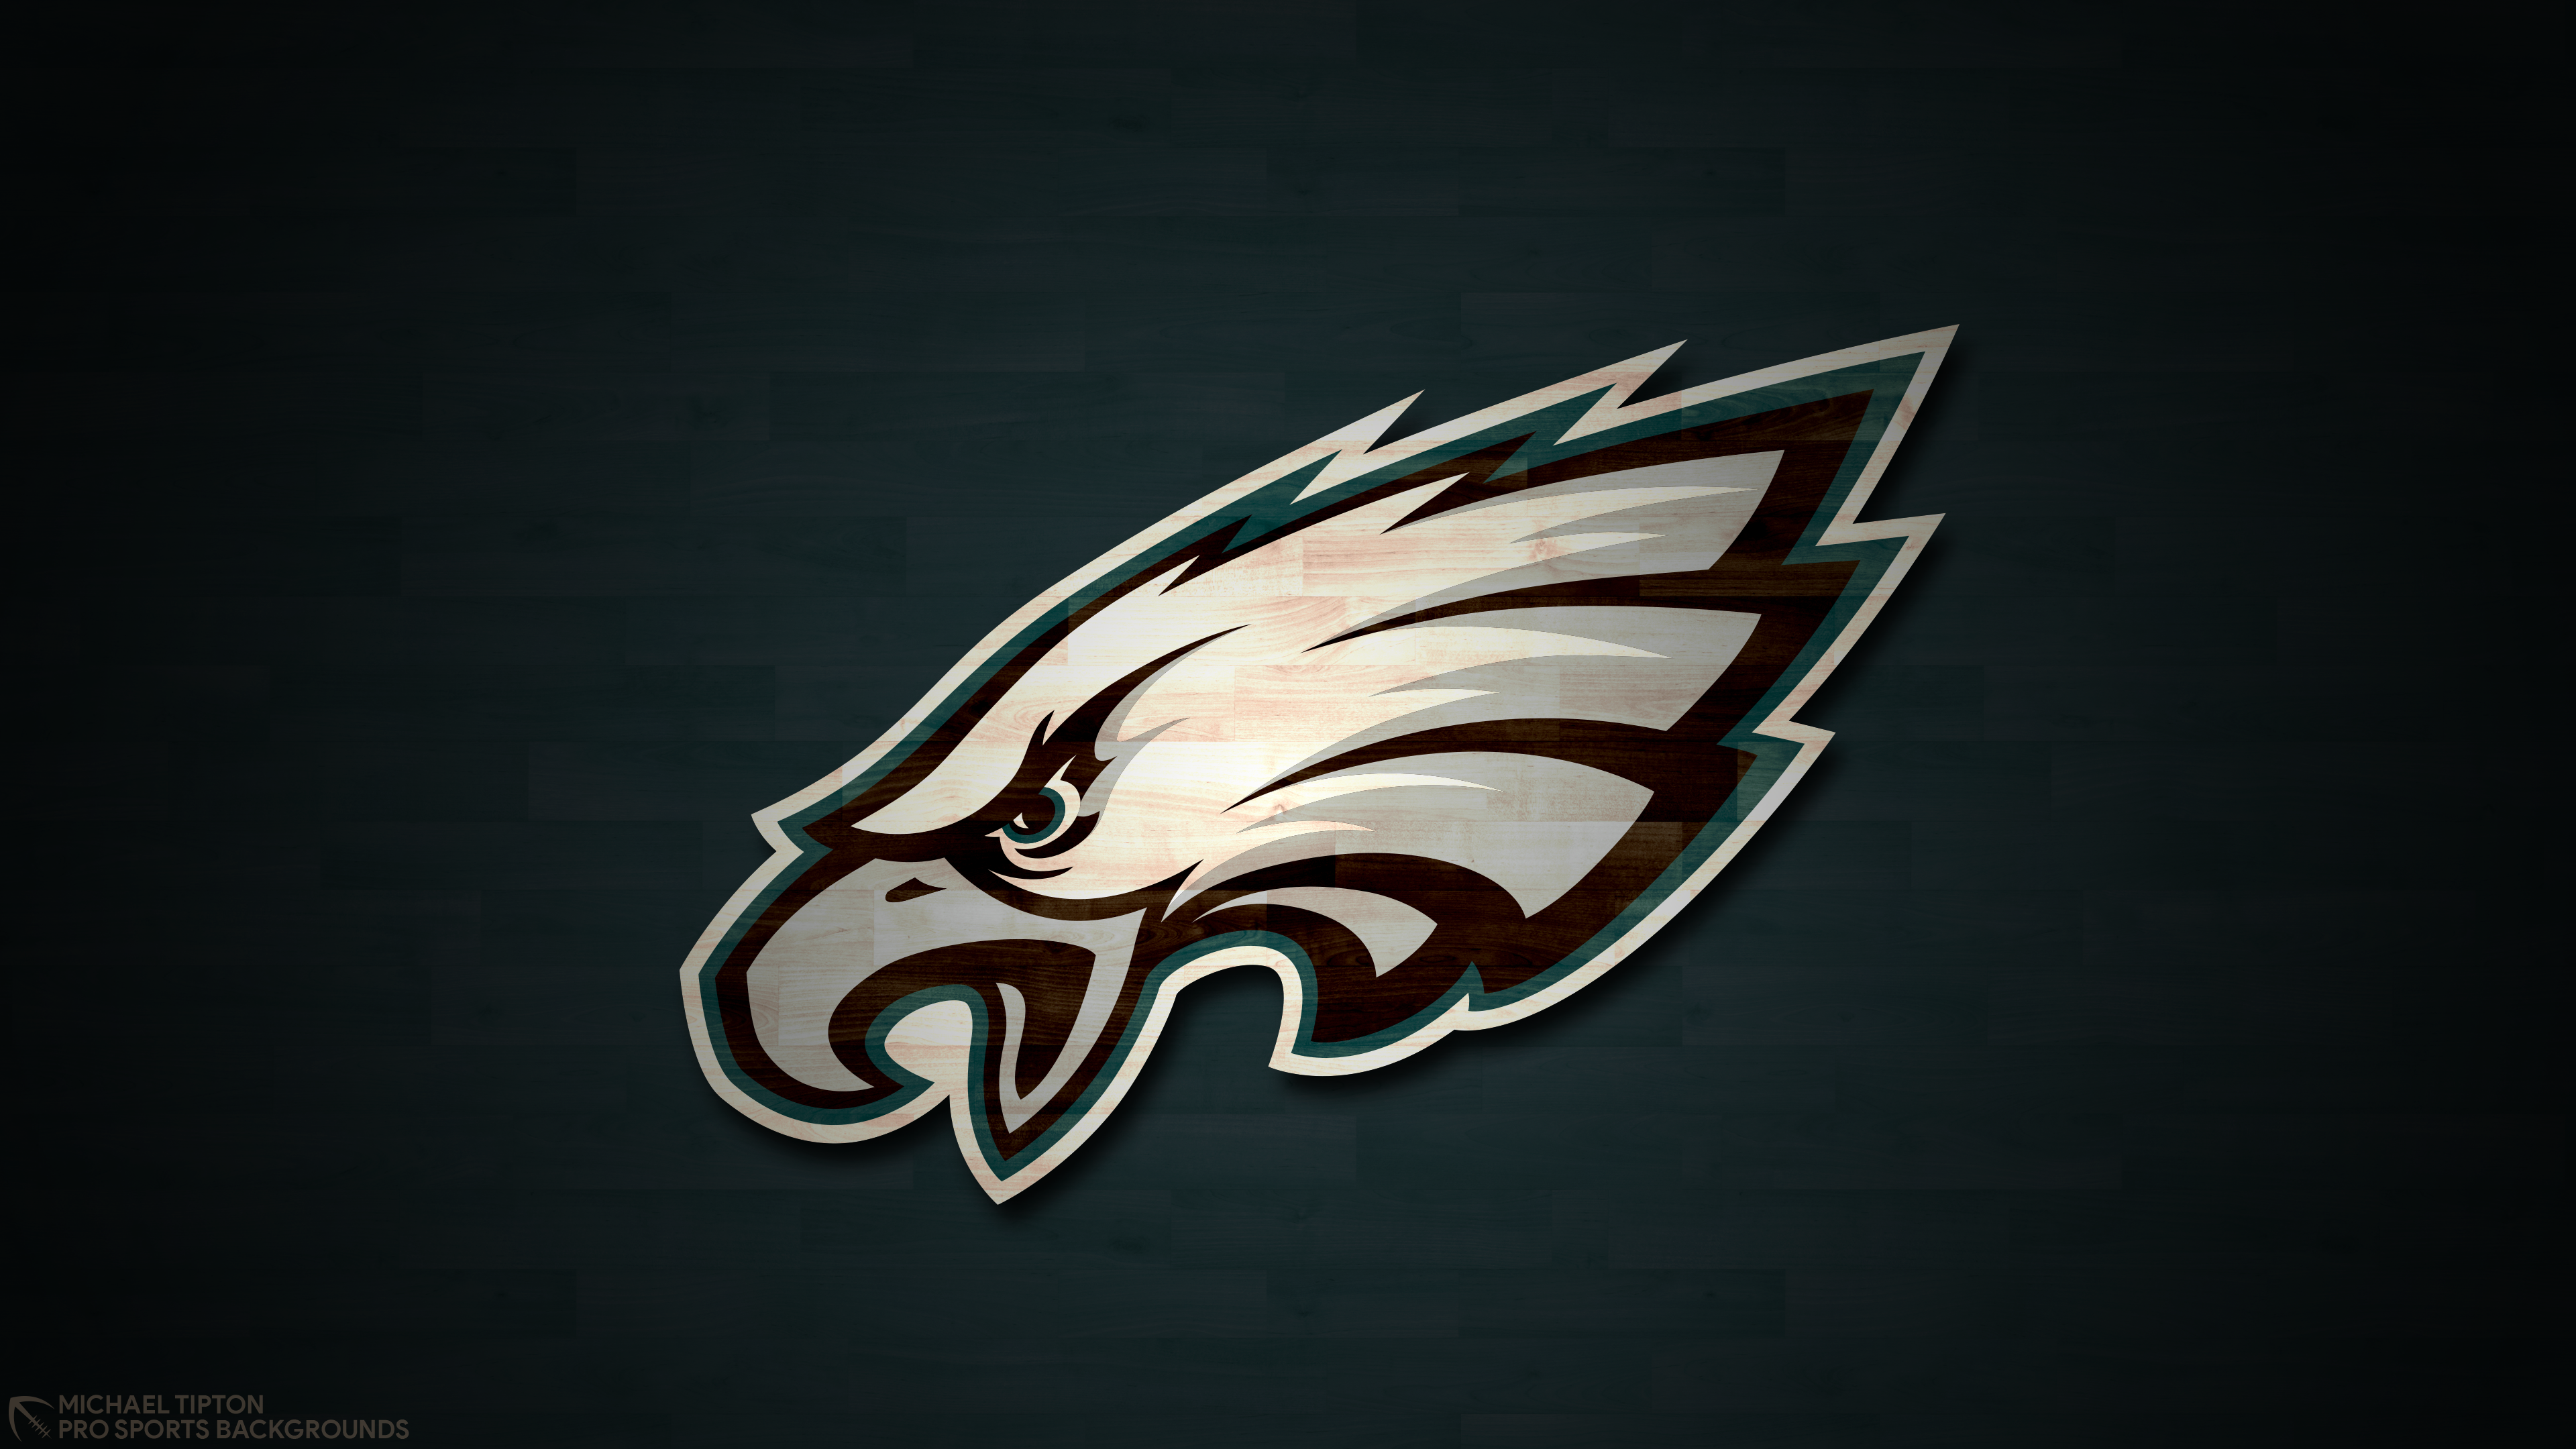 2021 Philadelphia Eagles Wallpapers Pro Sports Backgrounds